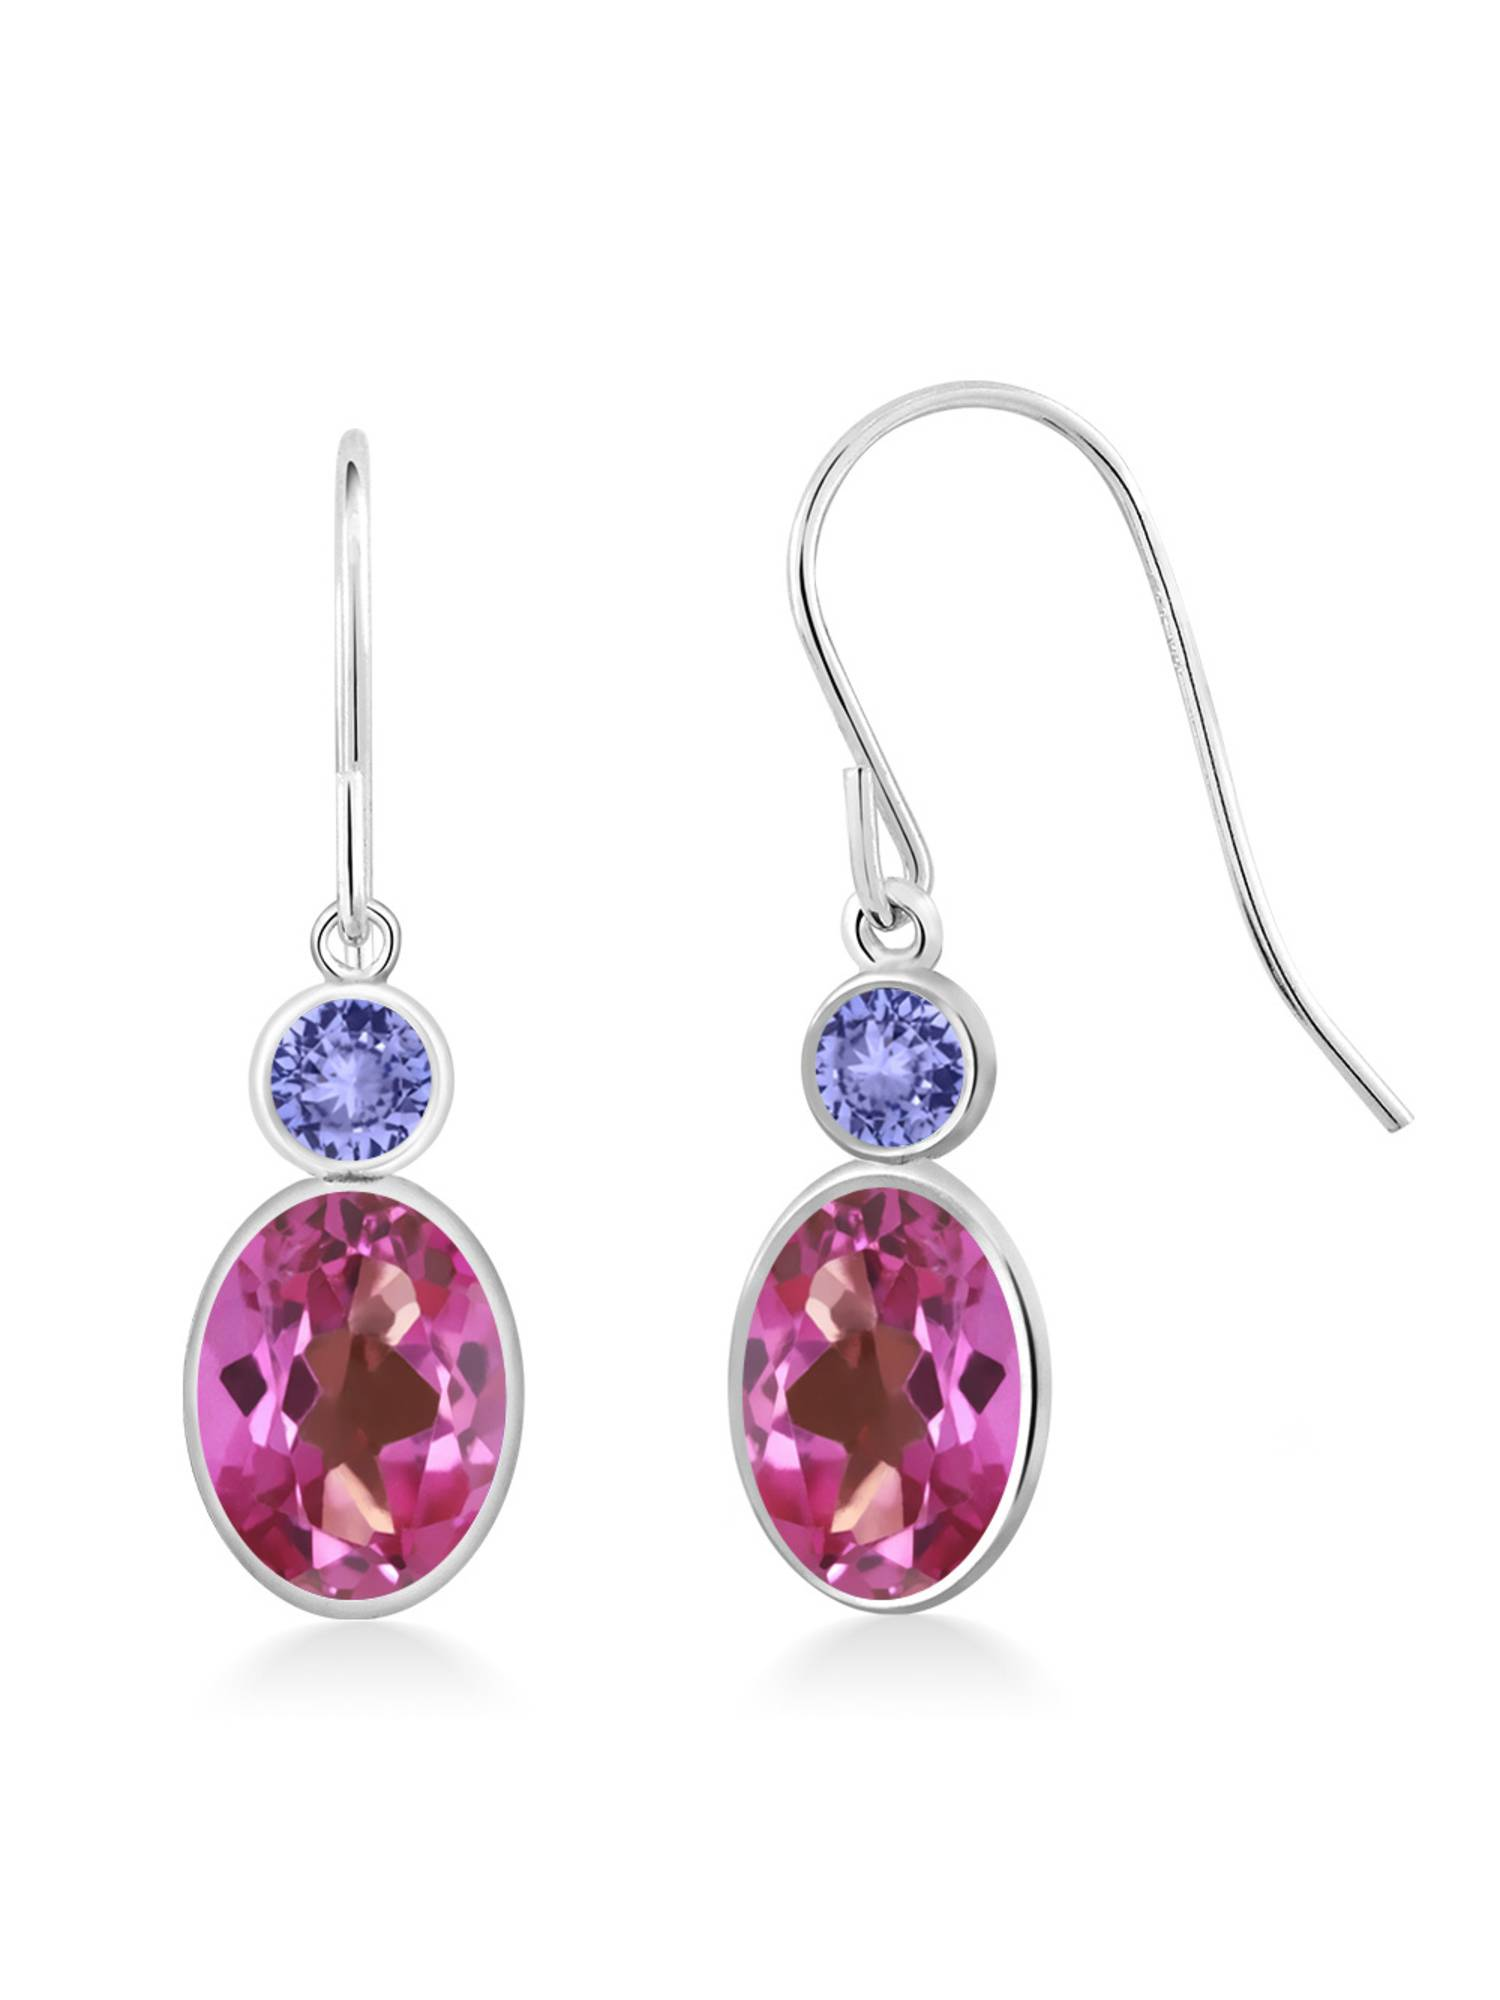 2.14 Ct Oval Pink Mystic Topaz Blue Tanzanite 14K White Gold Earrings by